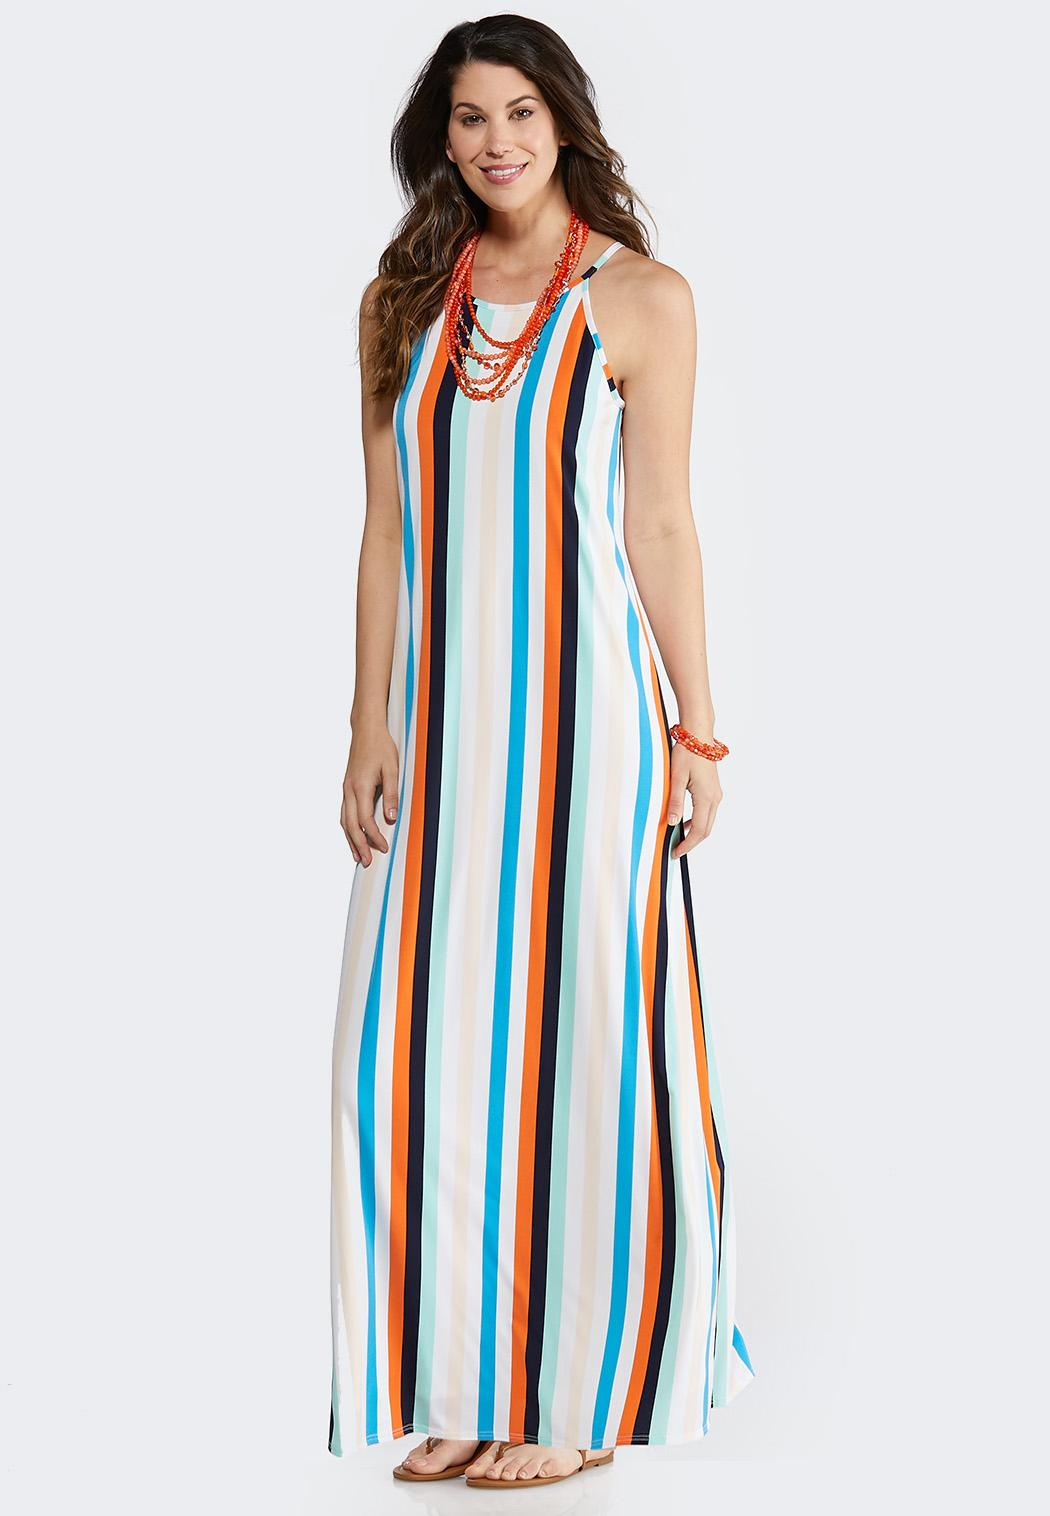 7342bc27f Vertical Stripe Maxi Dress alternate view · Vertical Stripe Maxi Dress